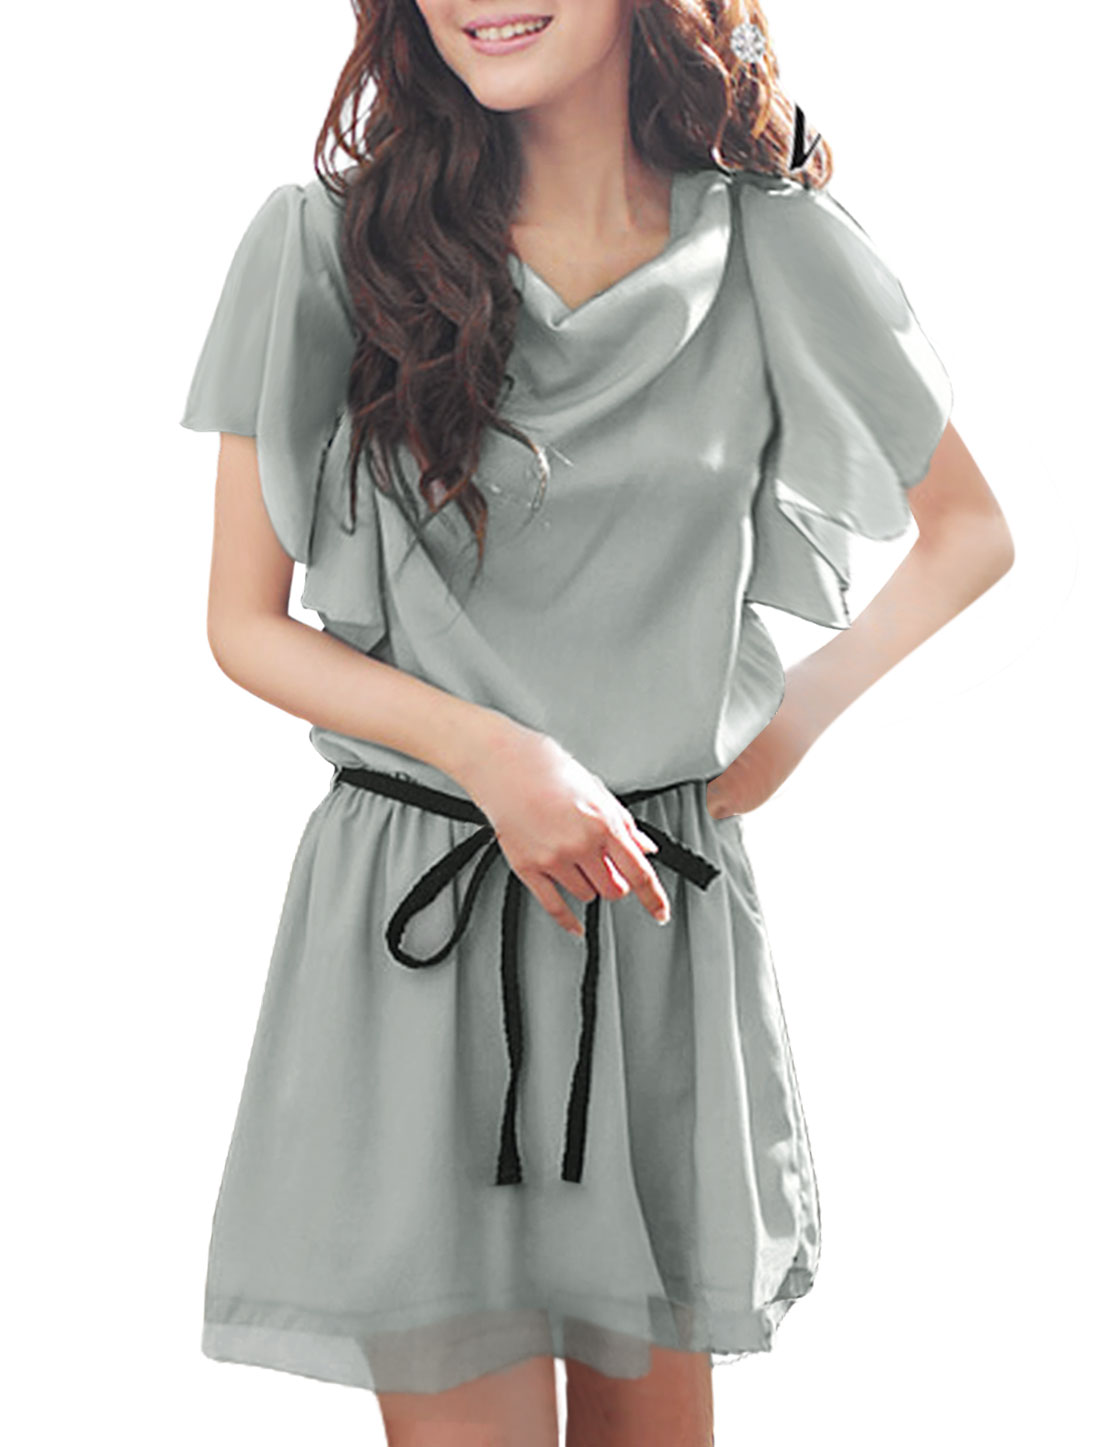 Woman Cowl Neck Sheer Top Elastic Waist Banded Dress Gray S